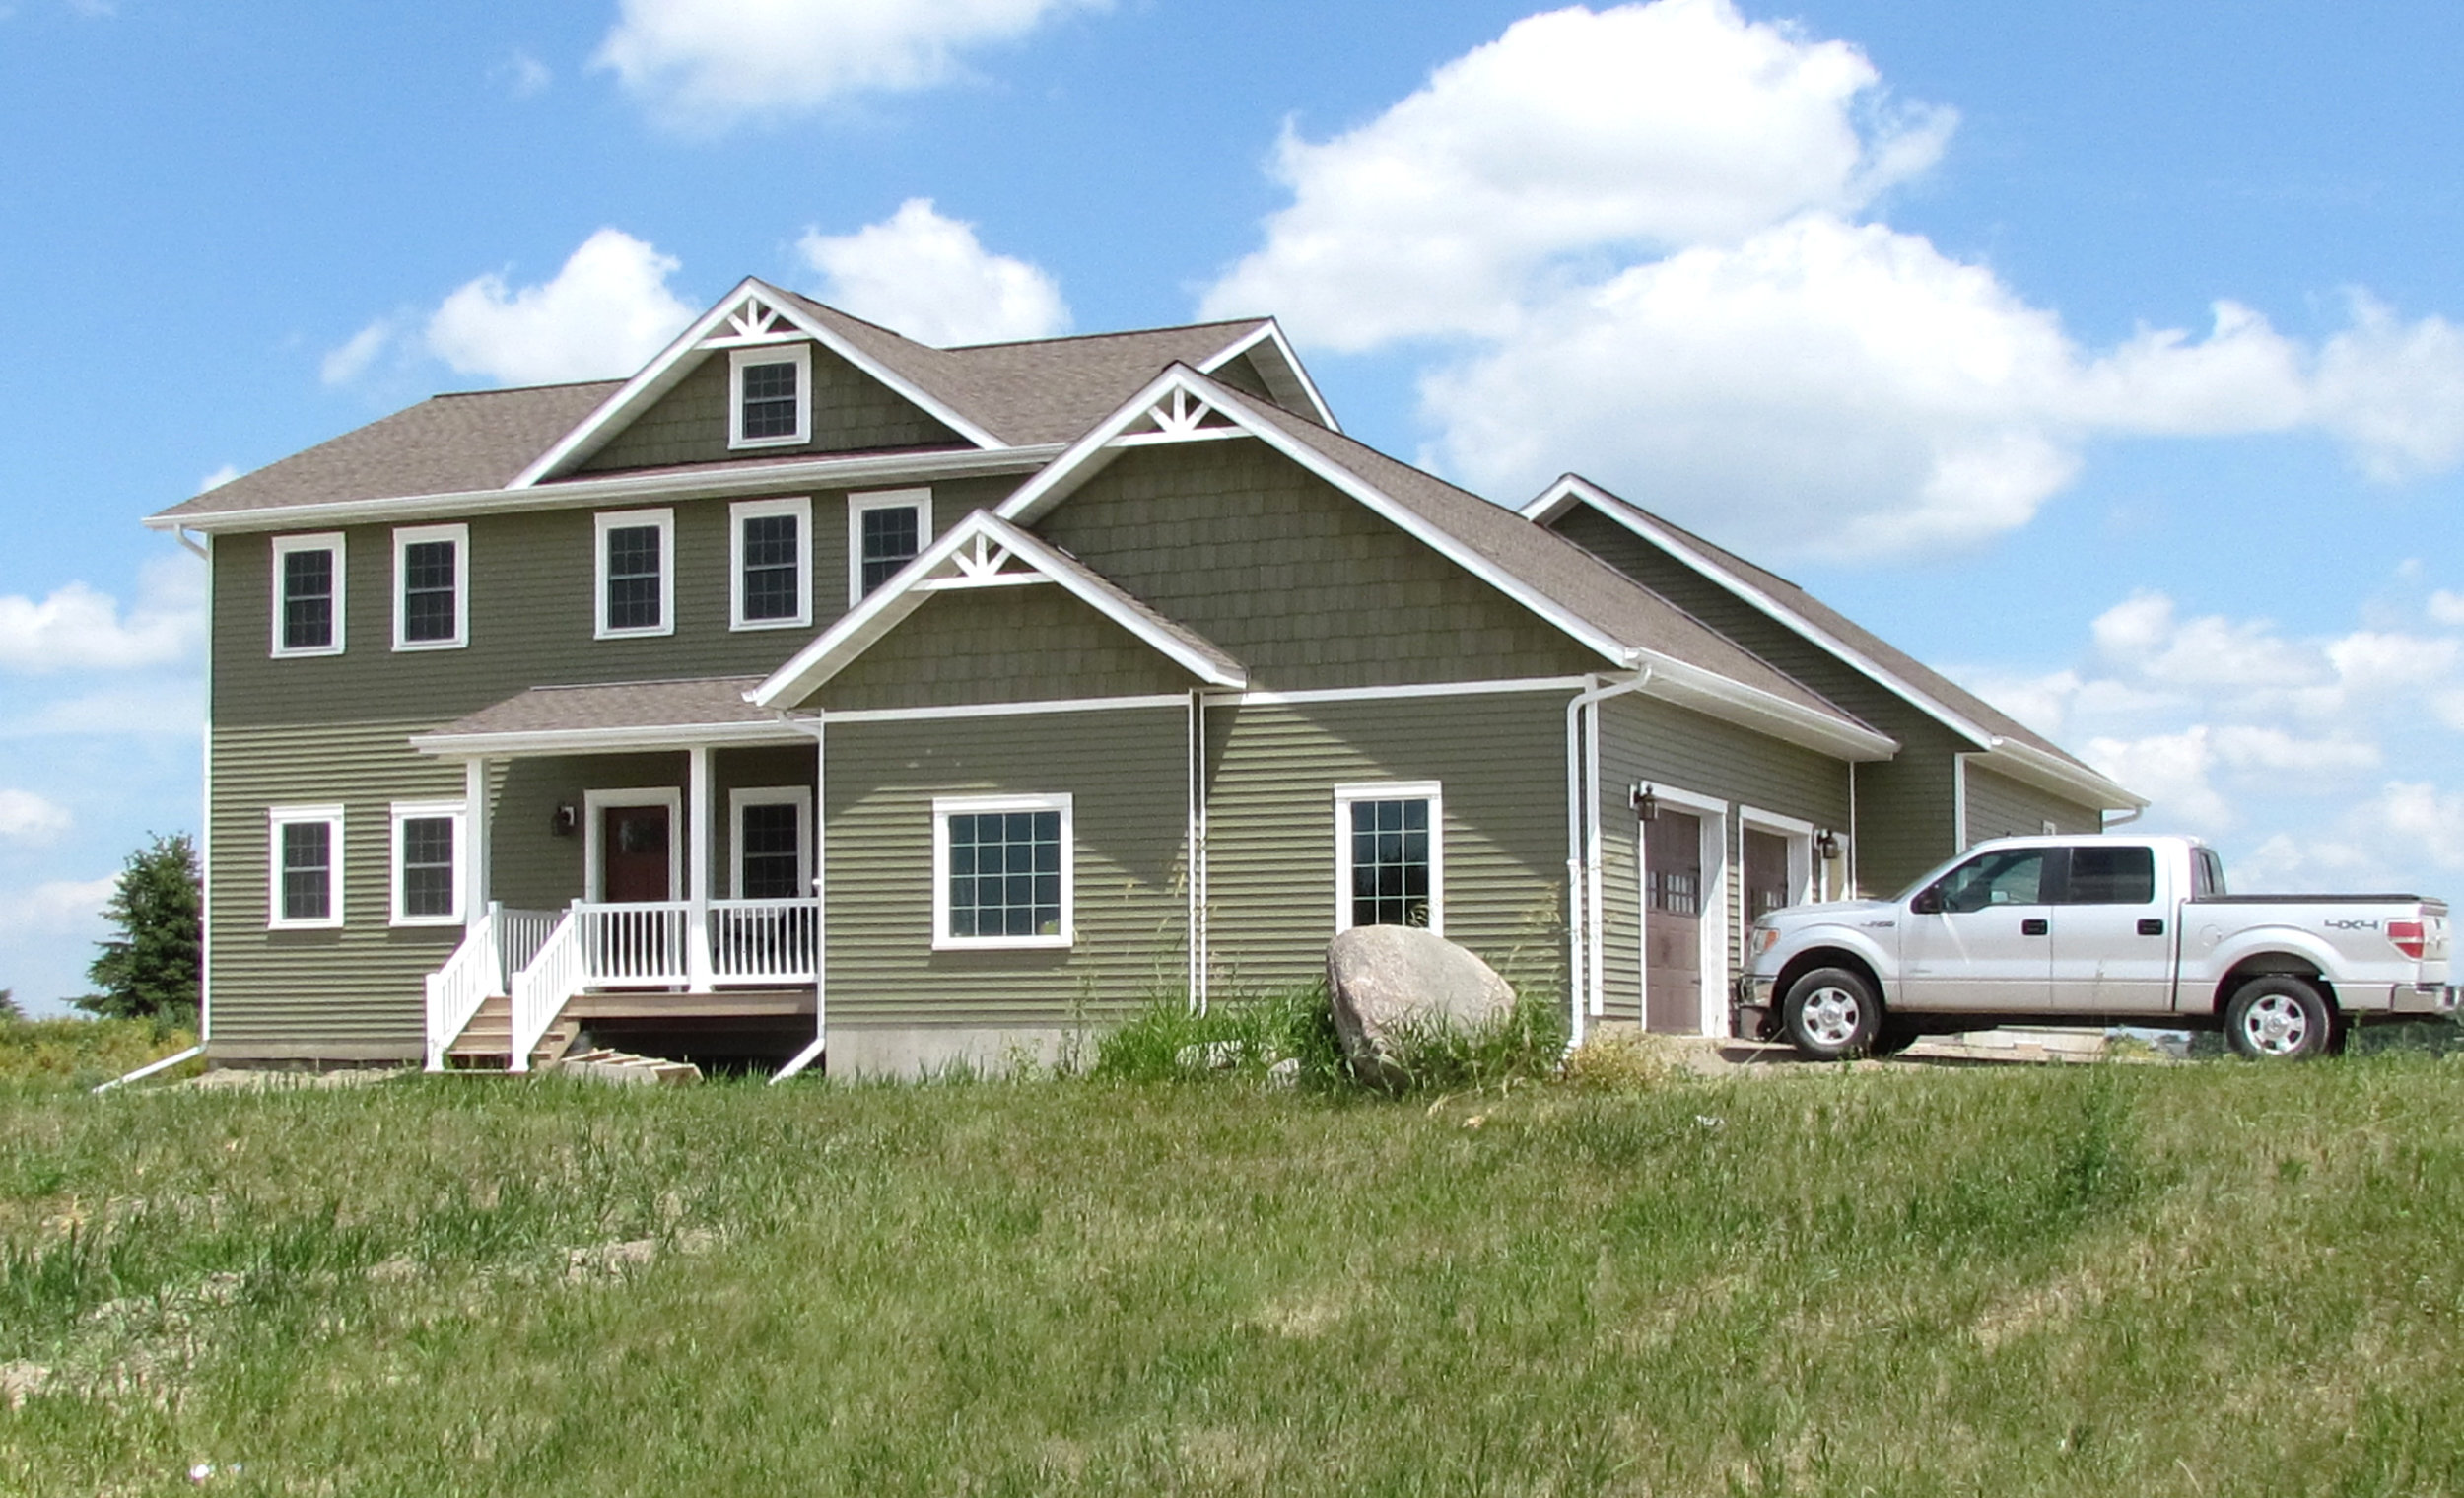 custom-home-build-jamestown-nd-Nill-Construction.jpg